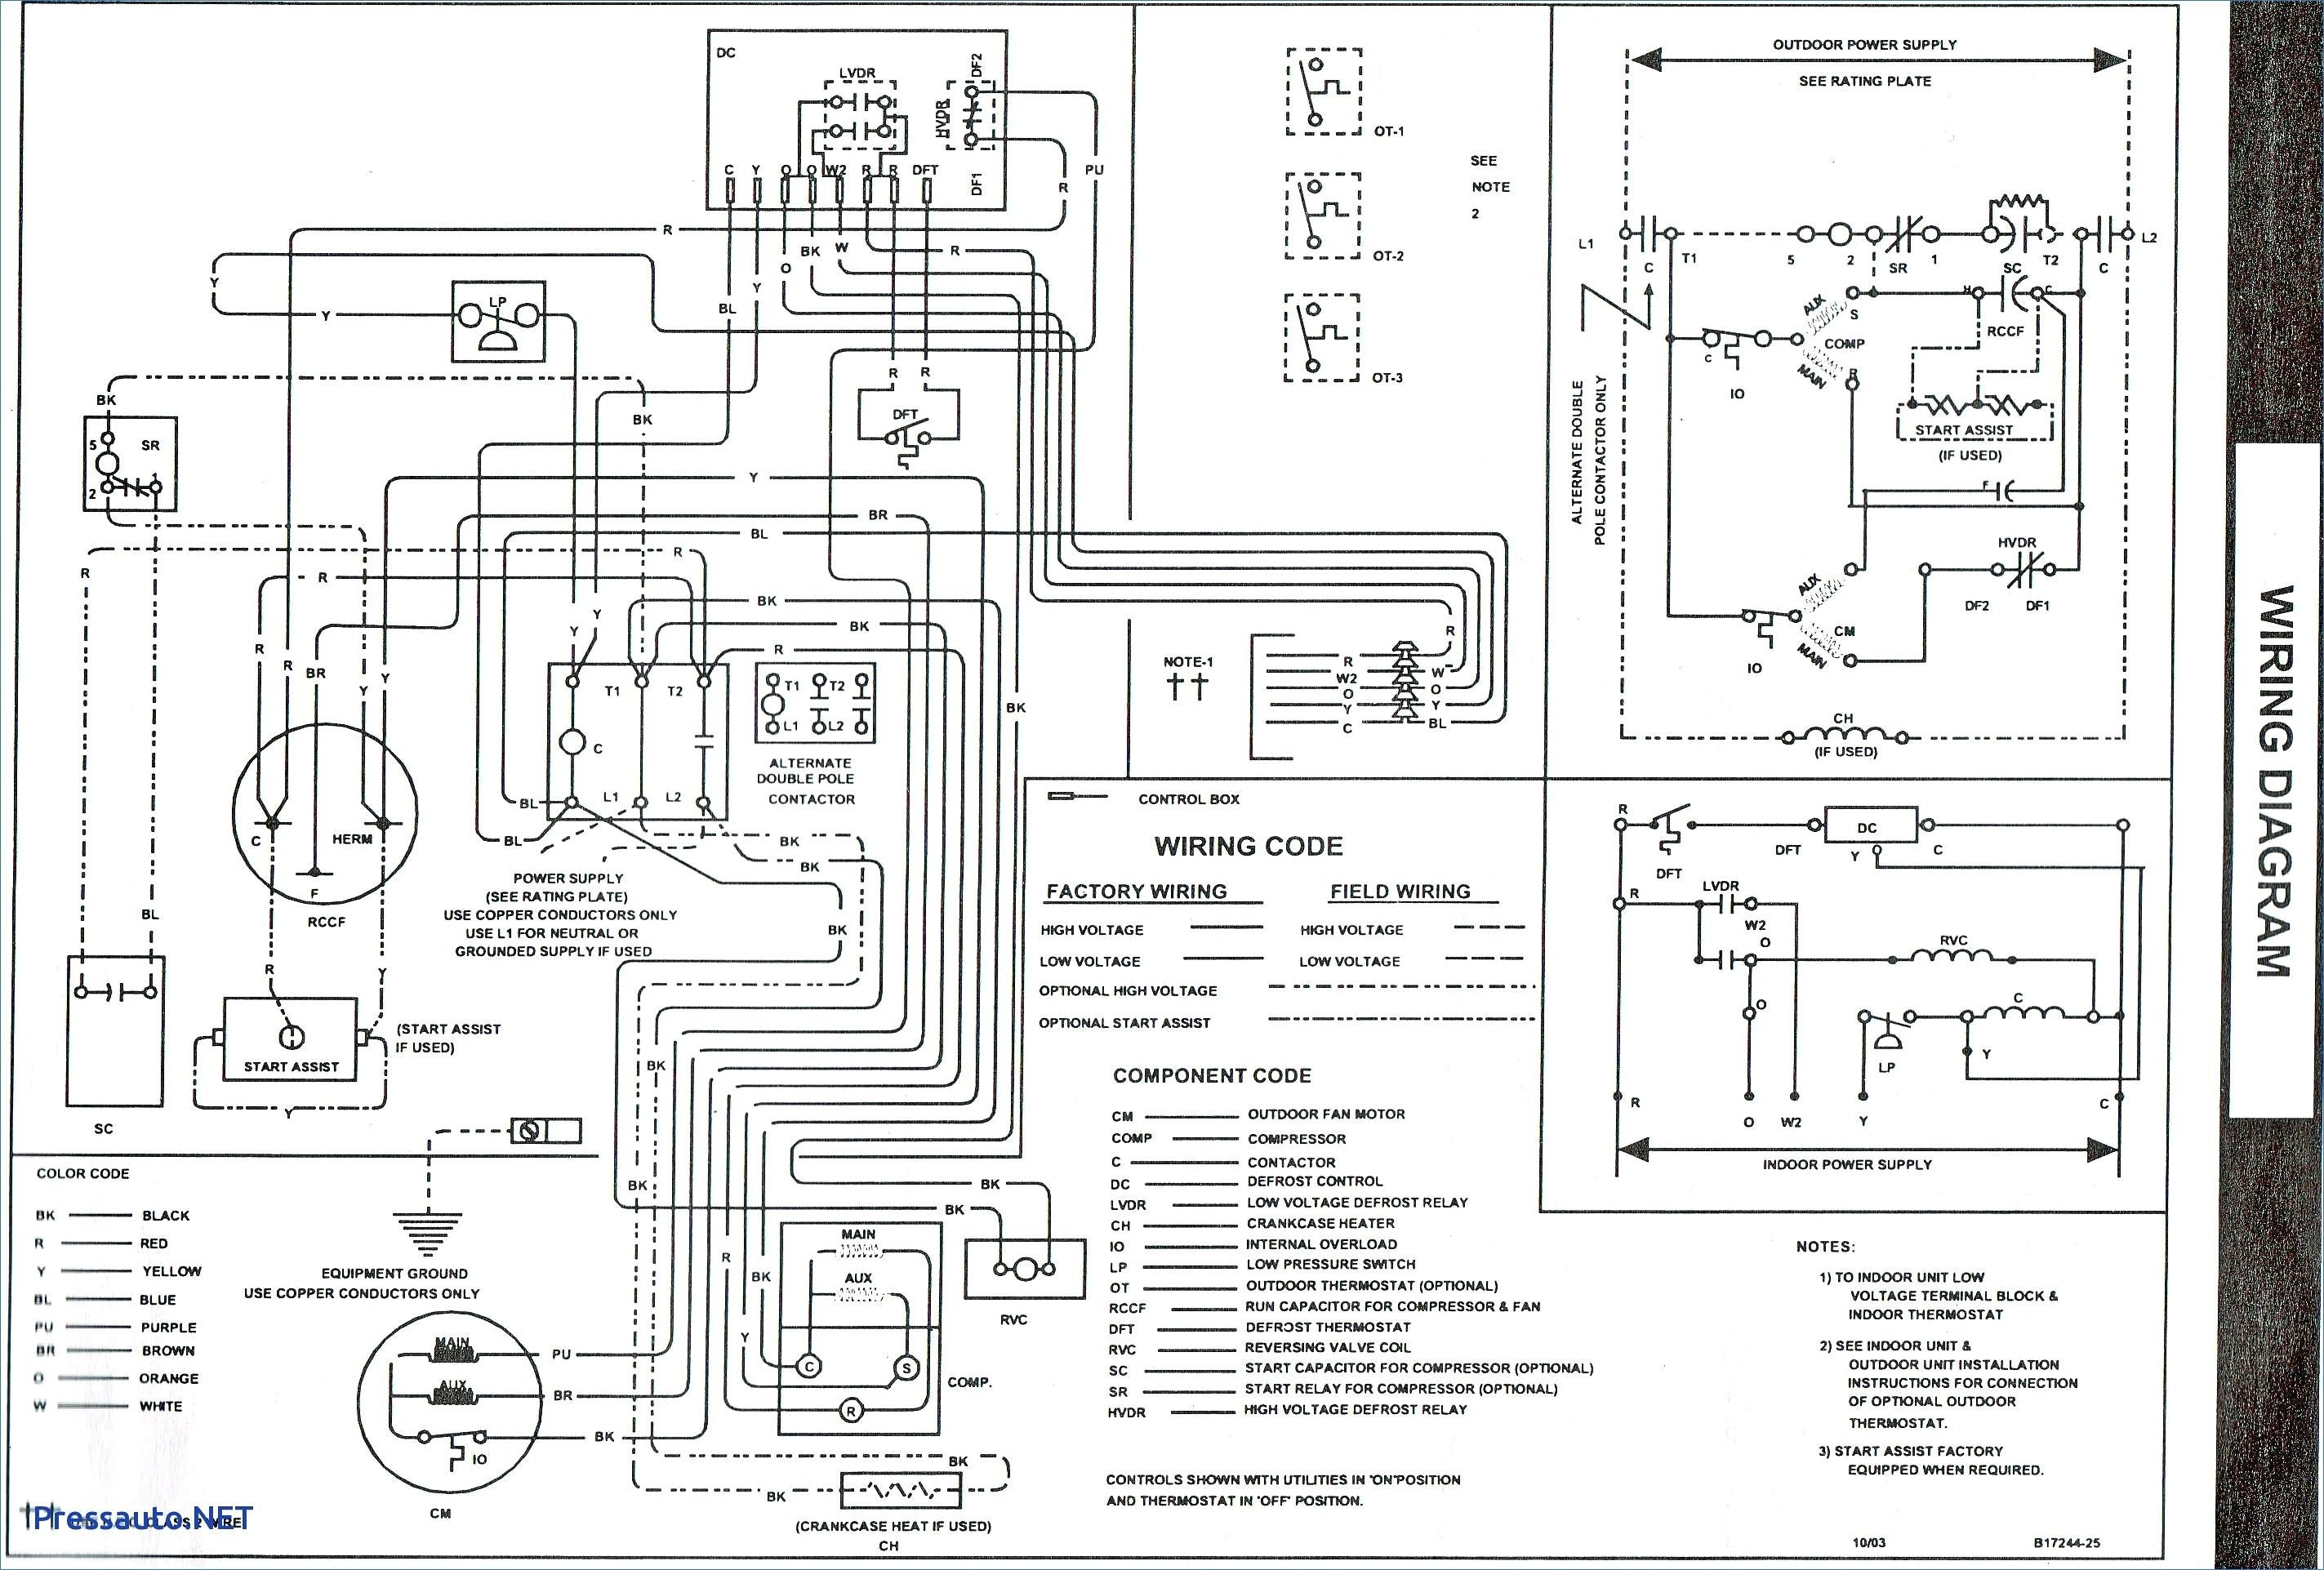 gas heater wiring diagram unique wiring diagram for goodman gas furnace diagram  wiring diagram for goodman gas furnace